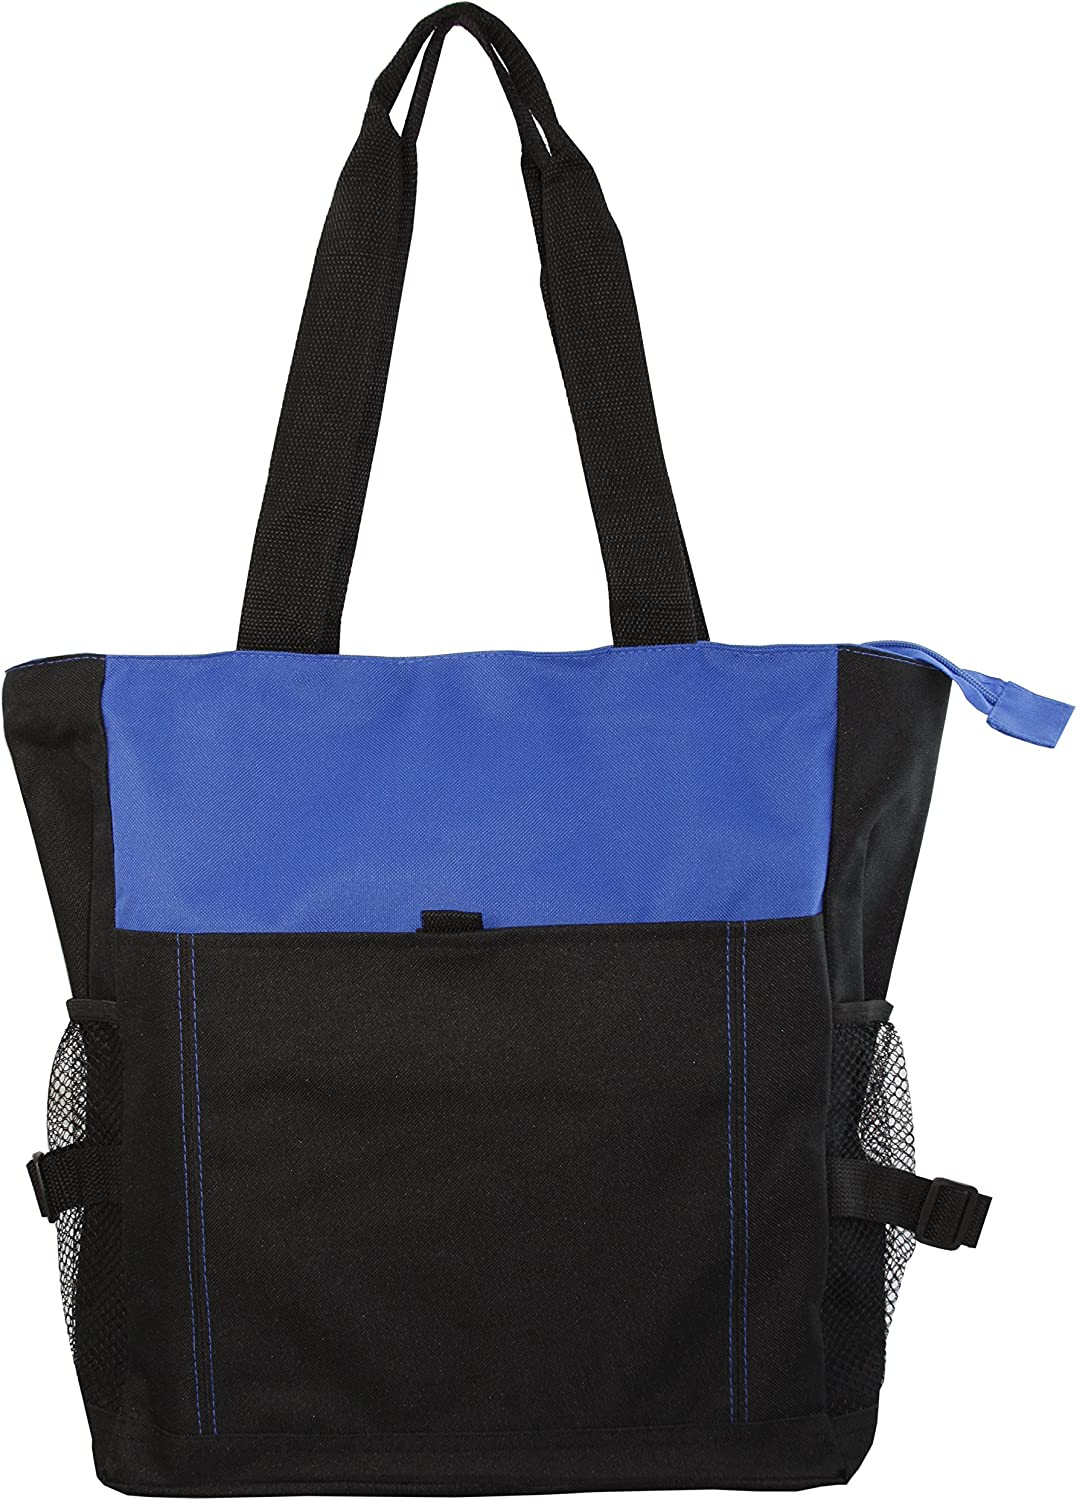 Deluxe Zippered Tote Bag with Mesh Side Pockets